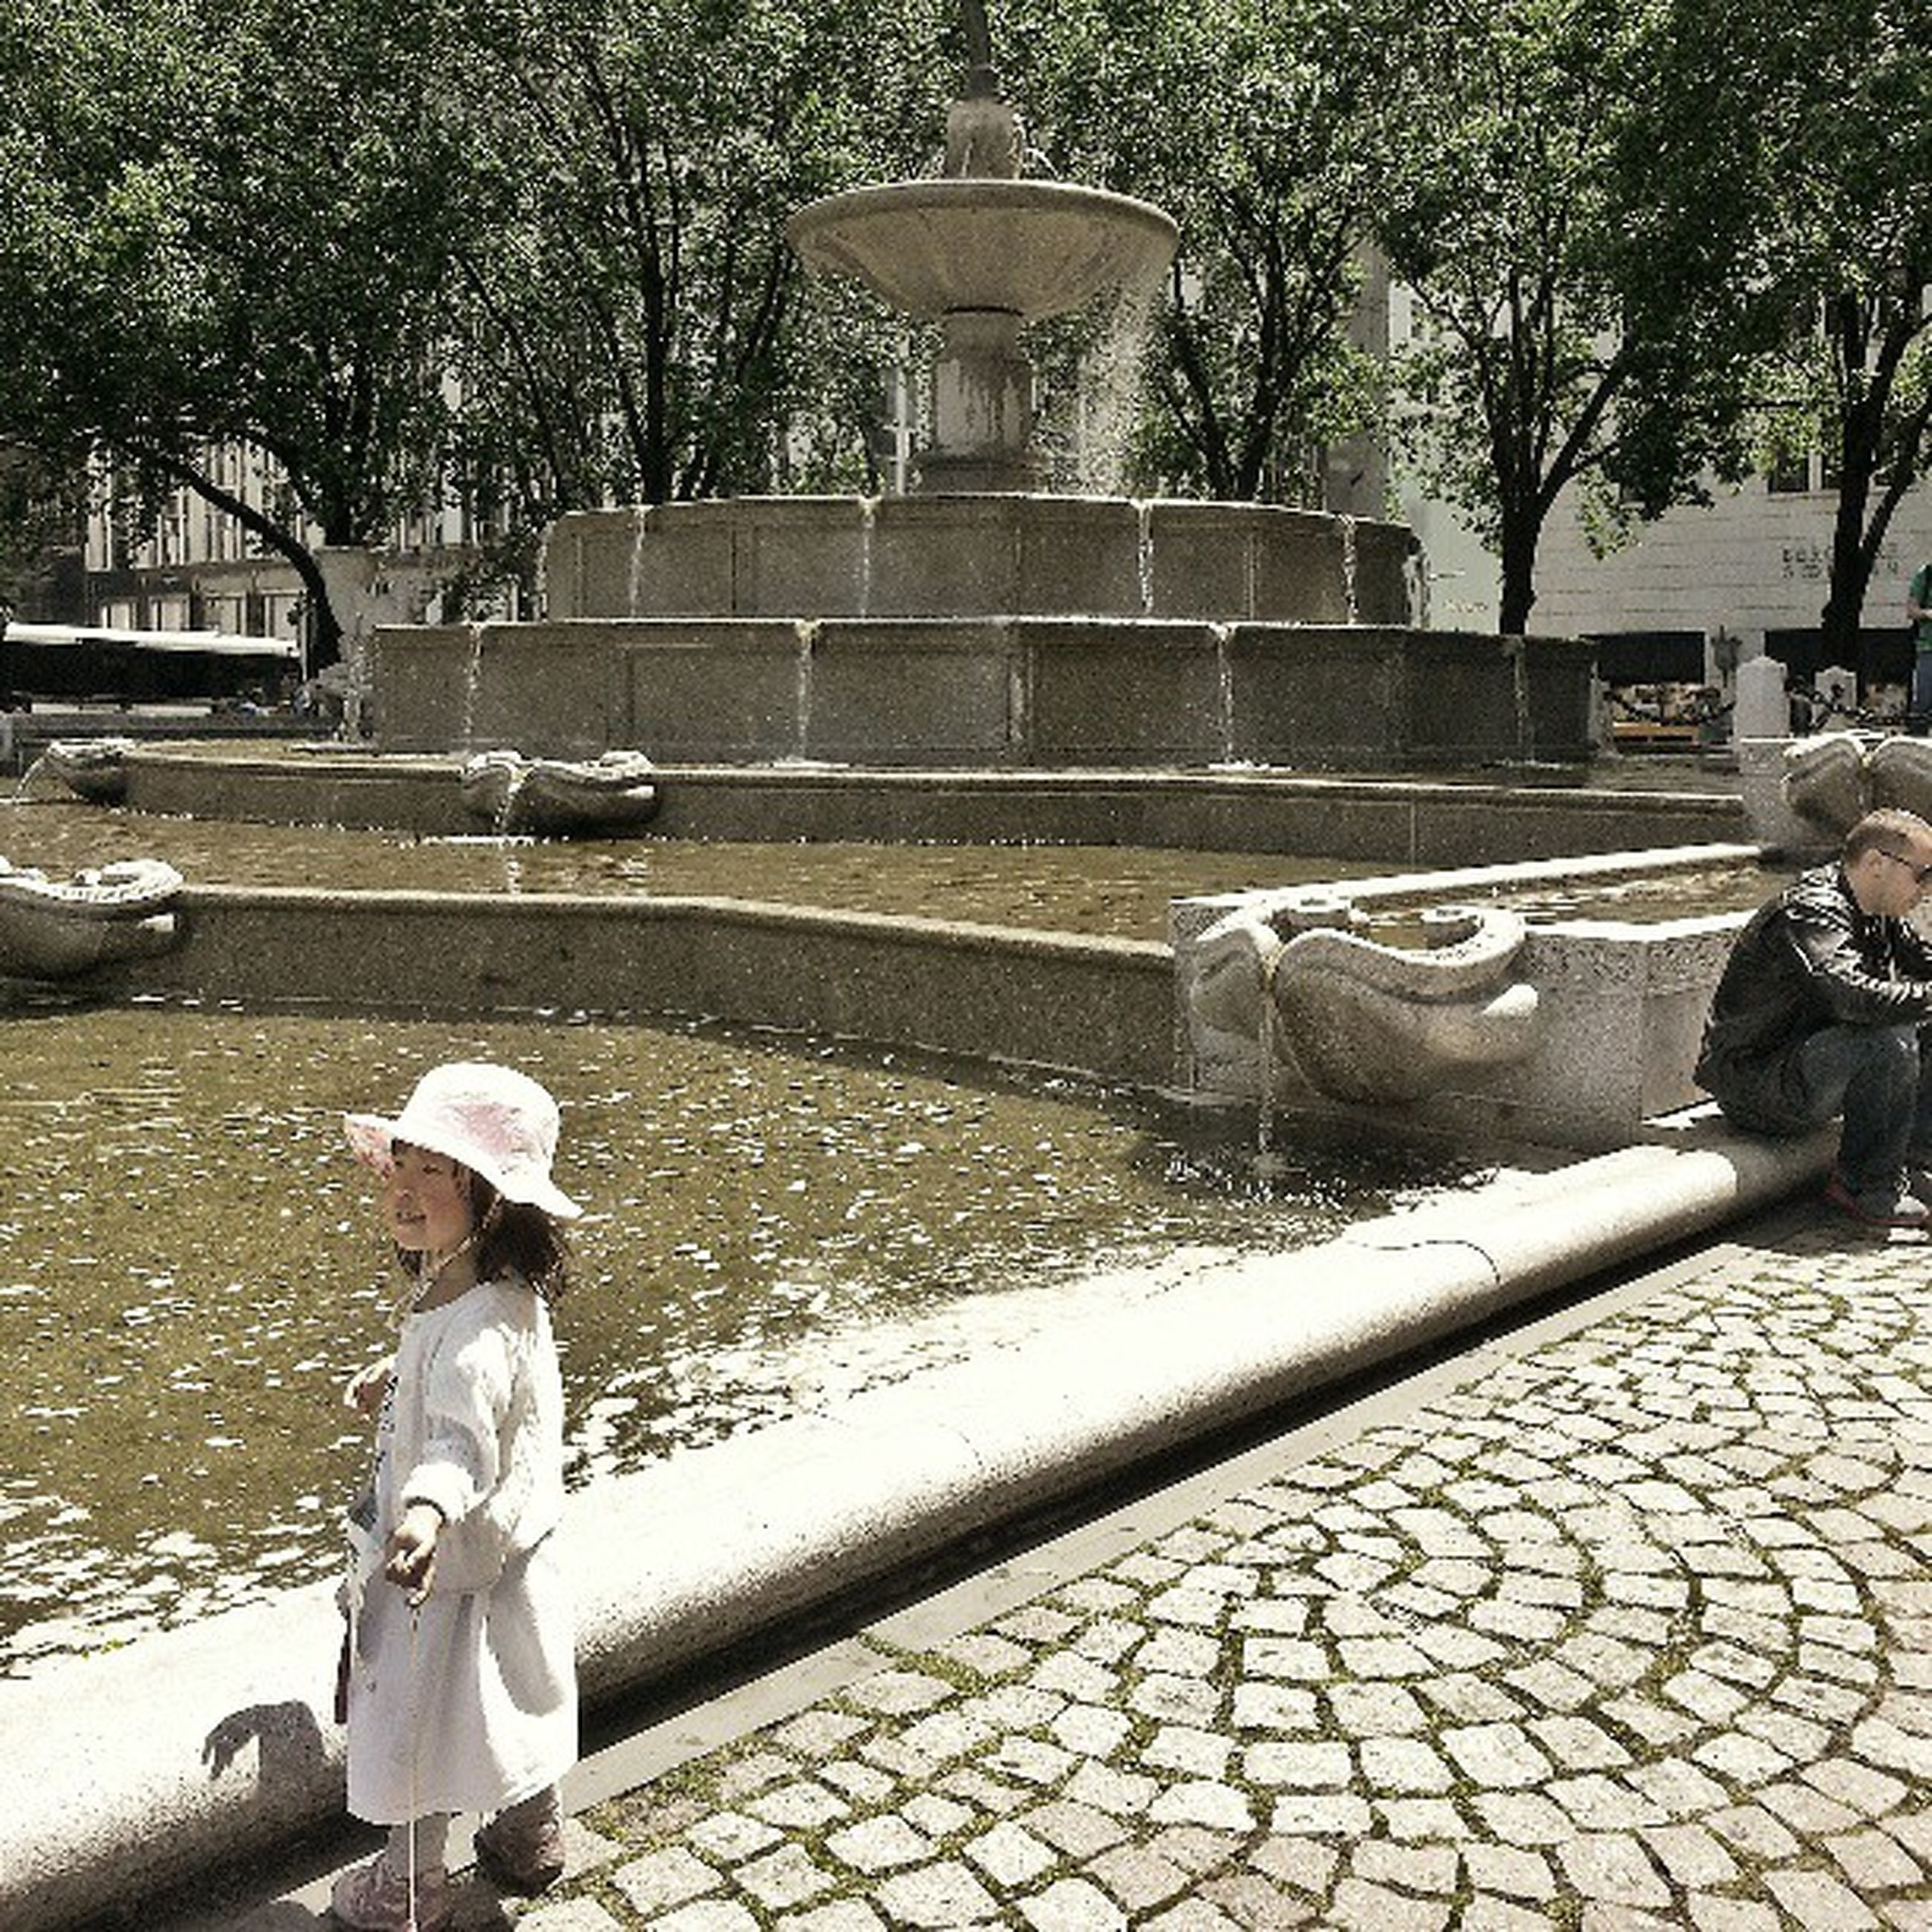 tree, street, cobblestone, transportation, fountain, park - man made space, outdoors, lifestyles, incidental people, sidewalk, day, men, footpath, statue, built structure, full length, car, land vehicle